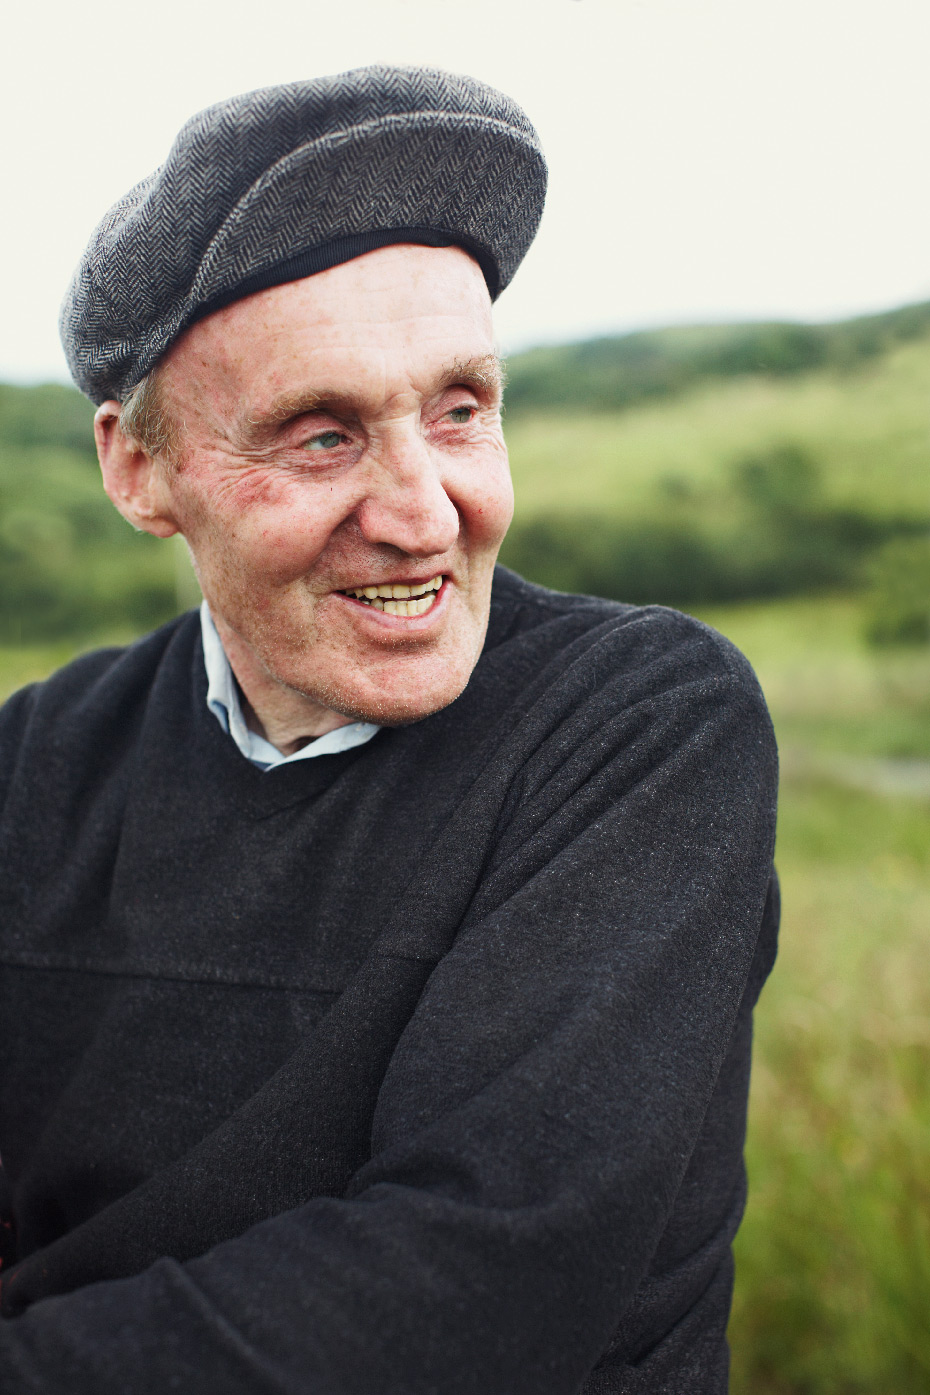 Stacey Van Berkel Photography I Irish Farmer with wool hat I Donegal, Ireland